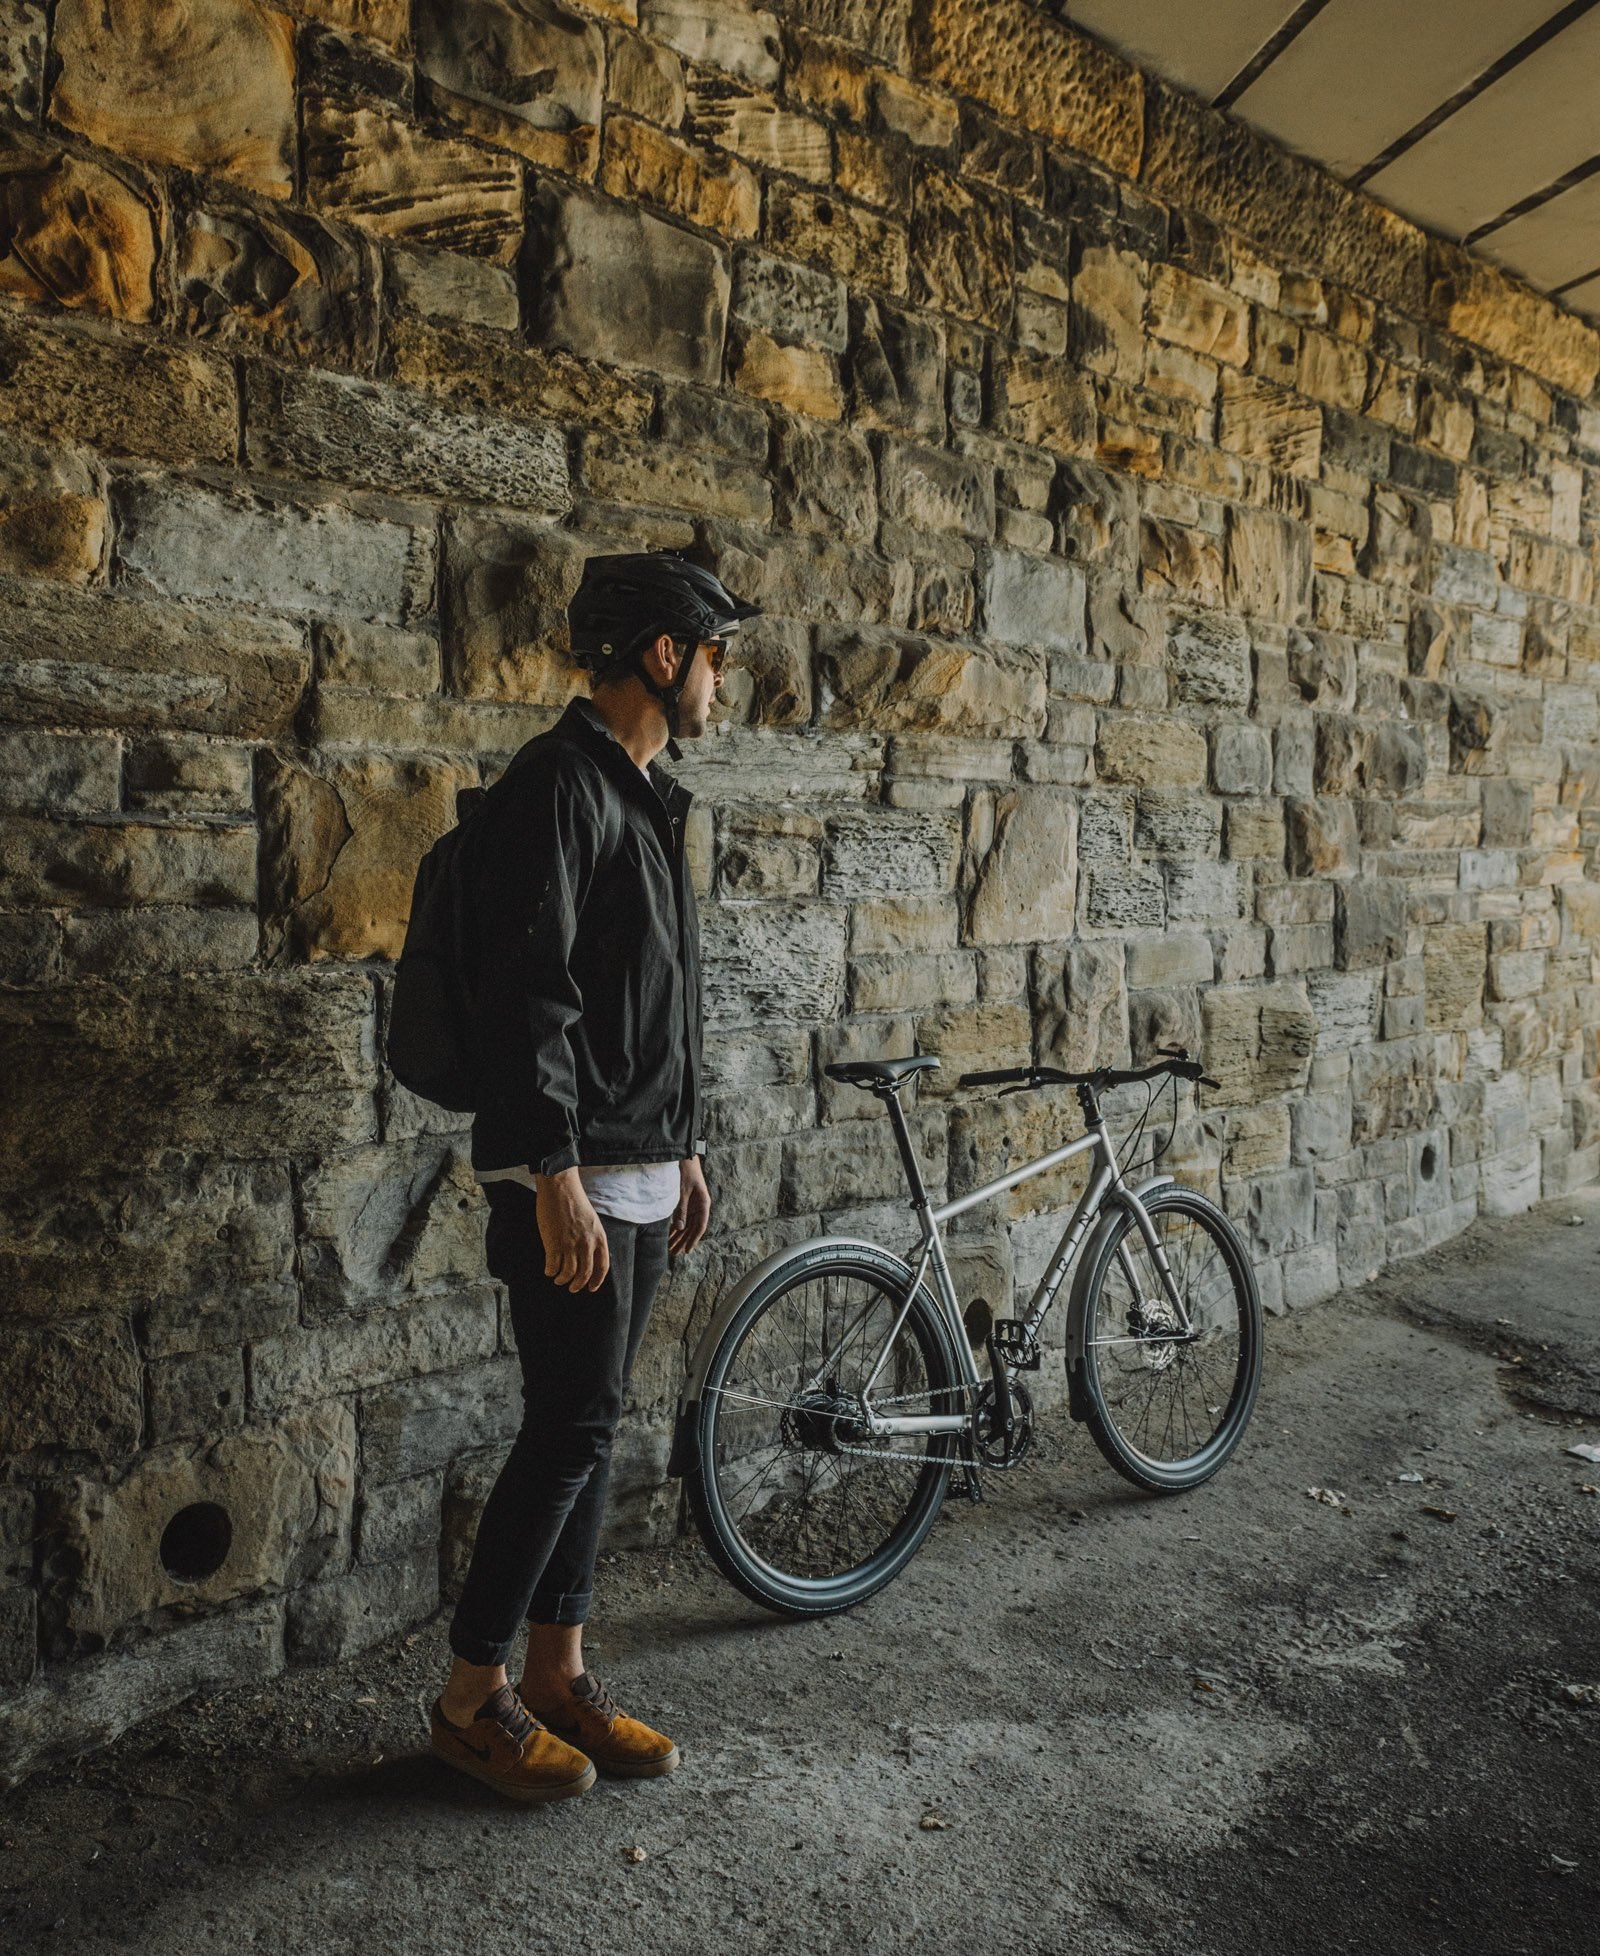 Commutor cyclist waiting in tunnel